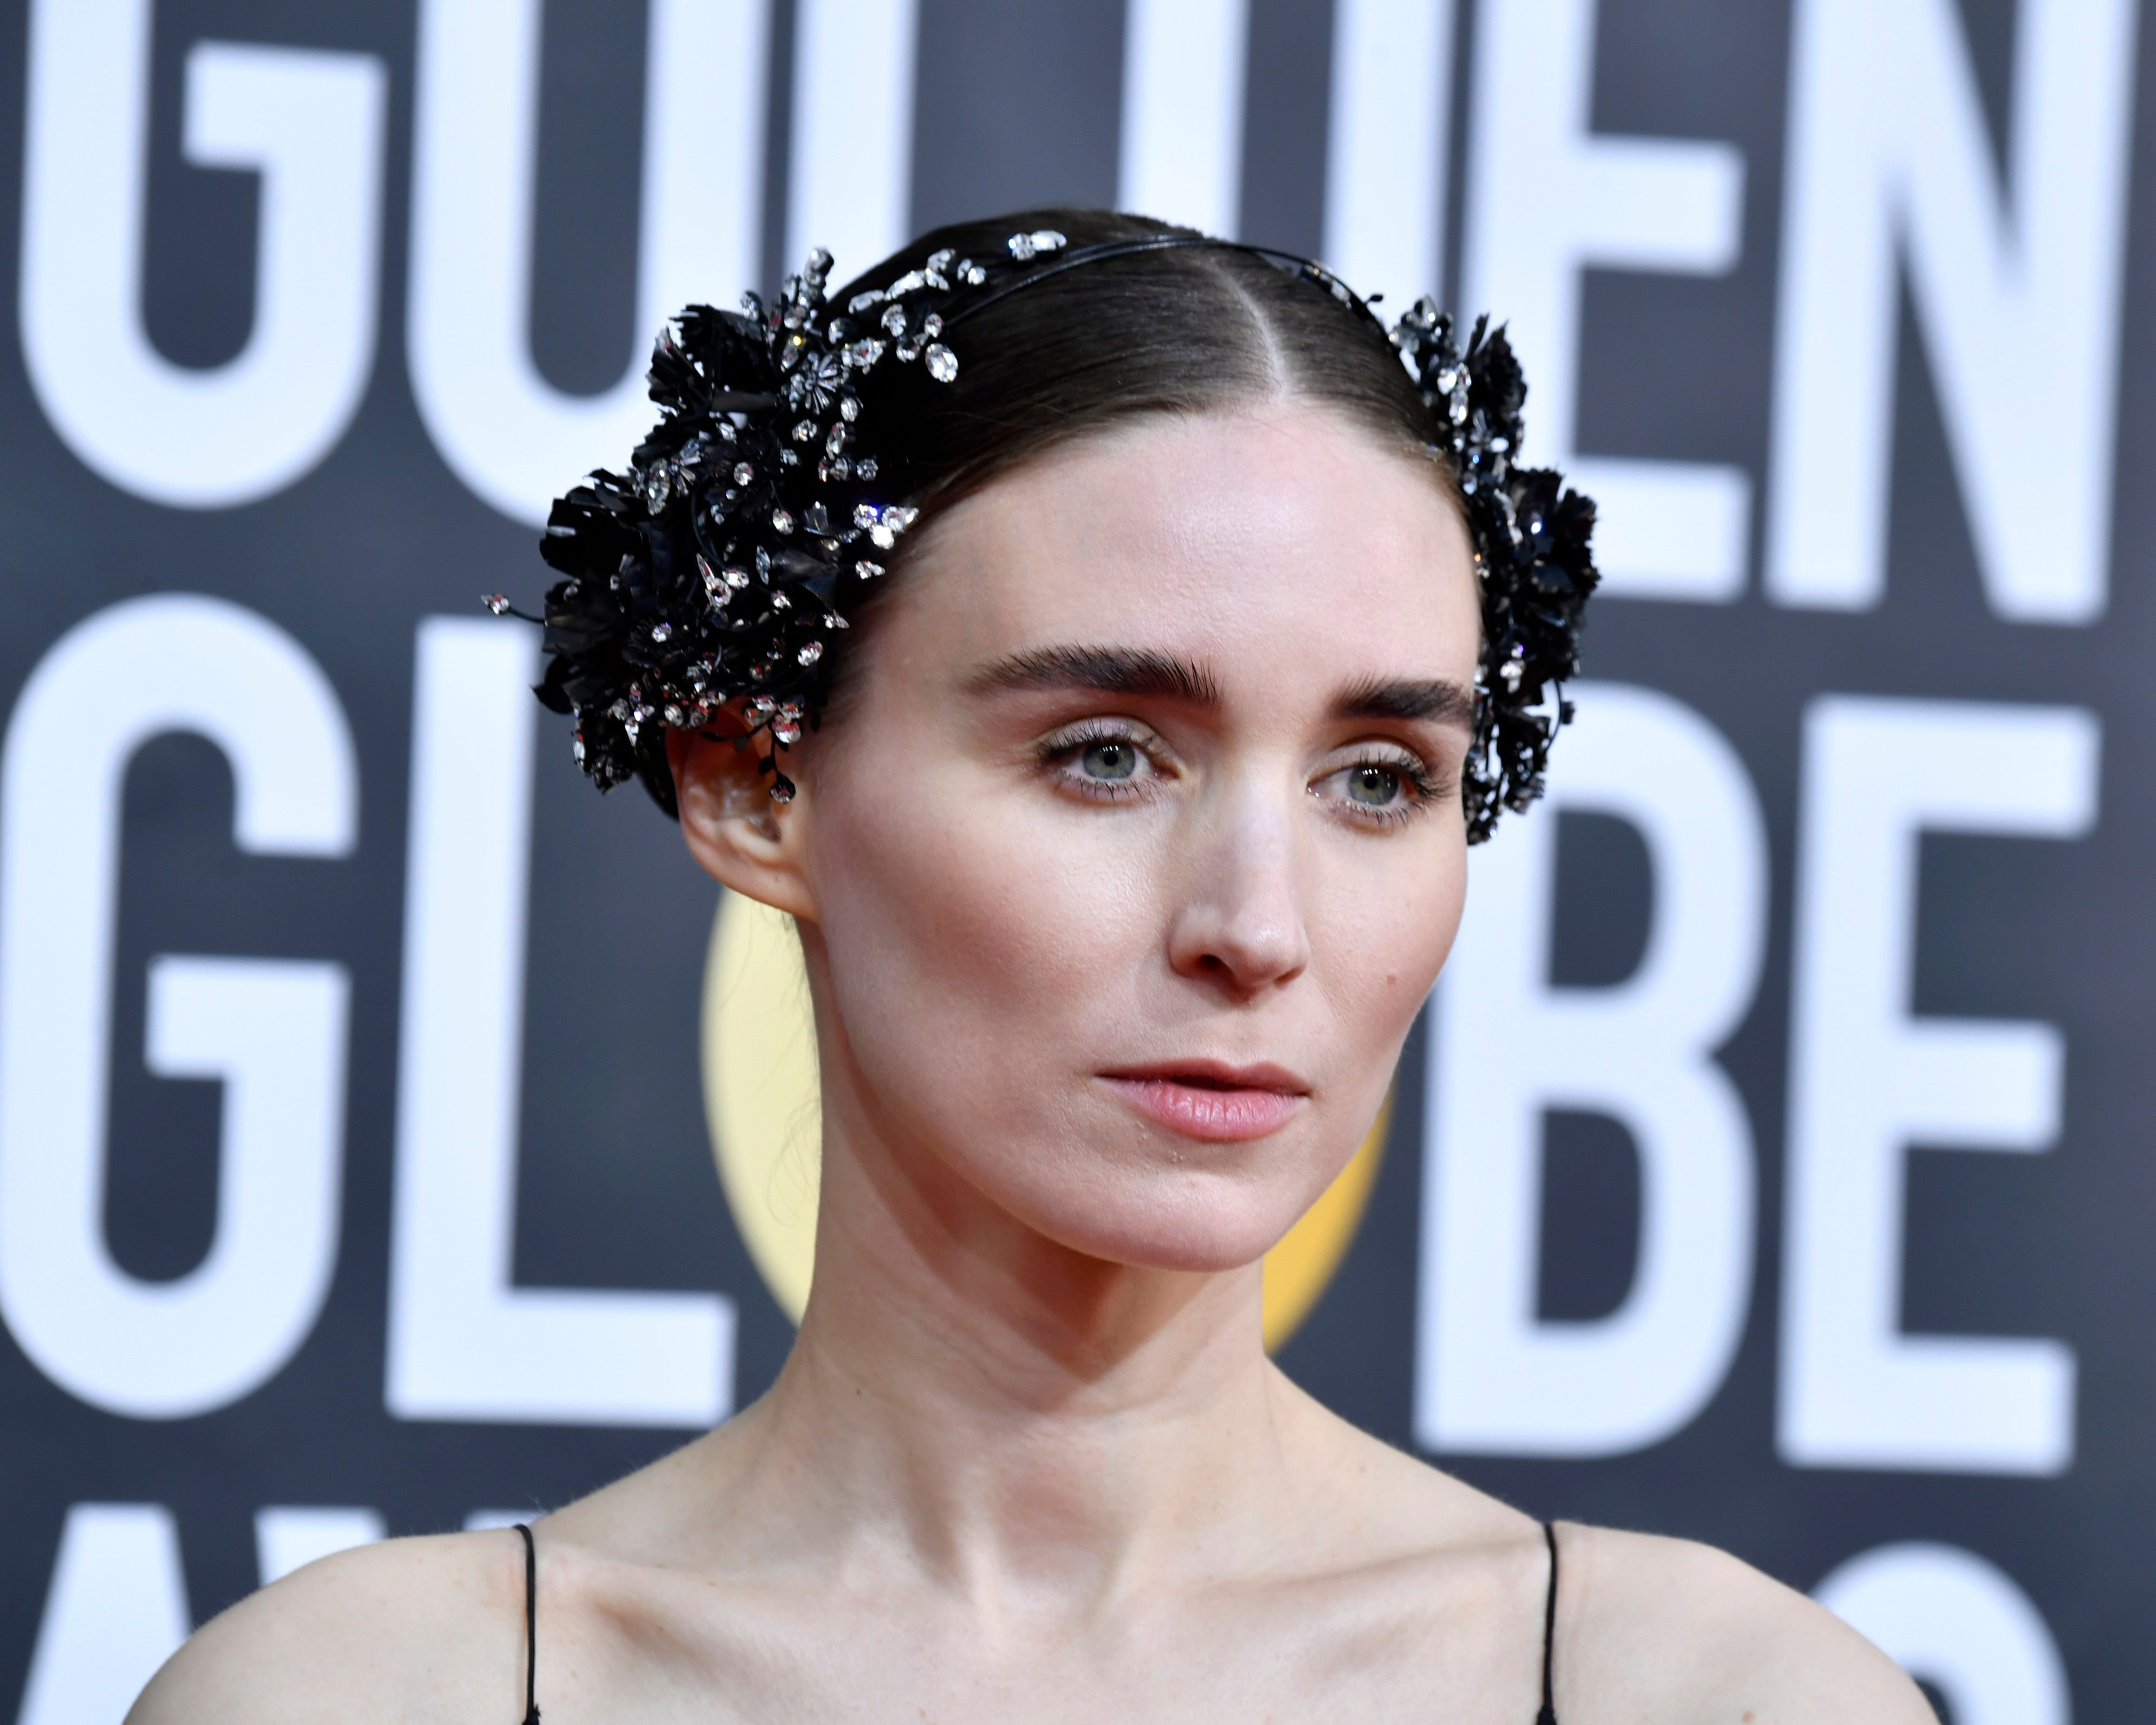 Rooney Mara at the 77th Annual Golden Globe Awards at The Beverly Hilton Hotel on January 05, 2020 | Photo: Getty Images